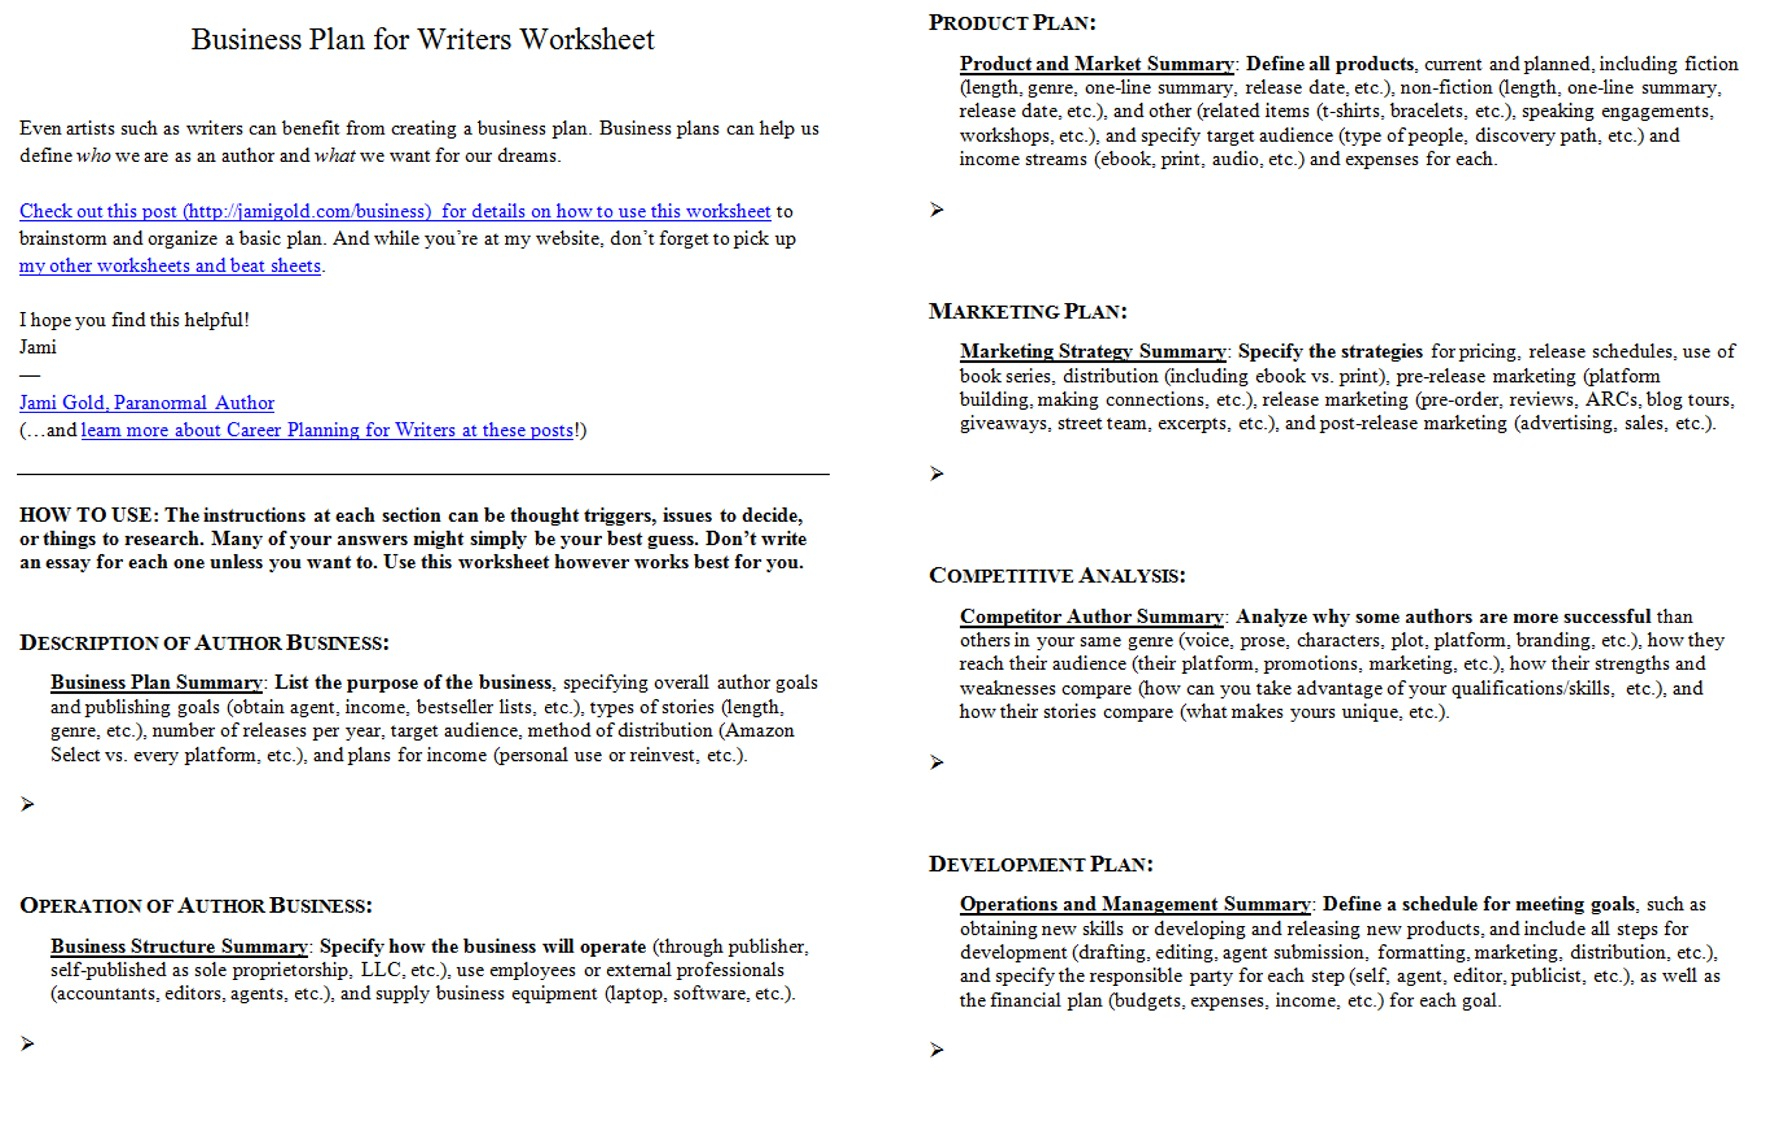 Proatmealus  Sweet Worksheets For Writers  Jami Gold Paranormal Author With Fetching Screen Shot Of Both Pages Of The Business Plan For Writers Worksheet With Astounding Stage Directions Worksheet Also Absolute Value Inequalities Word Problems Worksheet In Addition Main Idea Worksheet Th Grade And Graph Worksheets Nd Grade As Well As Th Grade Algebra  Worksheets Additionally Order Of Operations With Variables Worksheets From Jamigoldcom With Proatmealus  Fetching Worksheets For Writers  Jami Gold Paranormal Author With Astounding Screen Shot Of Both Pages Of The Business Plan For Writers Worksheet And Sweet Stage Directions Worksheet Also Absolute Value Inequalities Word Problems Worksheet In Addition Main Idea Worksheet Th Grade From Jamigoldcom